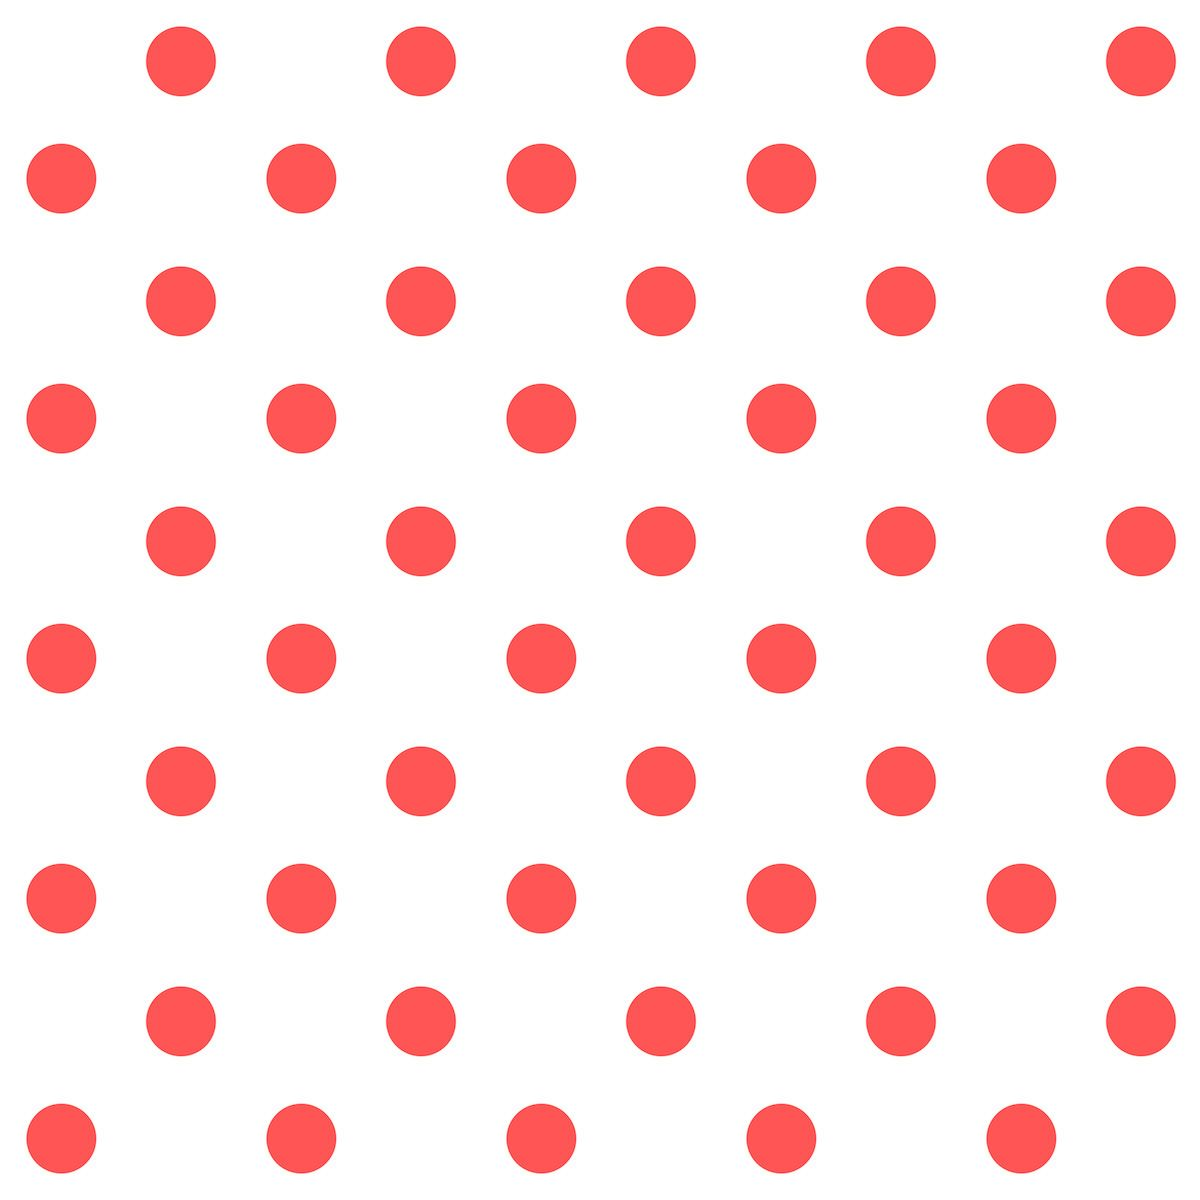 Free Digital Polka Dot Scrapbooking Paper Red And White Punktchenmuster Freebie Printable Scrapbook Paper Scrapbook Printables Free Polka Dots Wallpaper